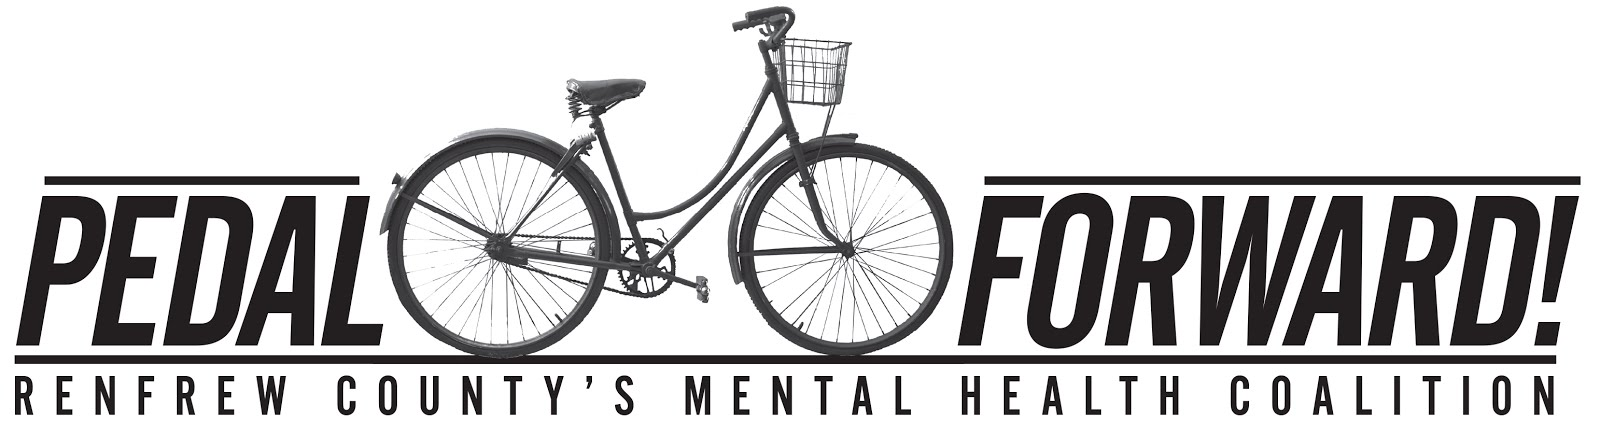 Pedal Forward - Renfrew County Mental Health Coalition